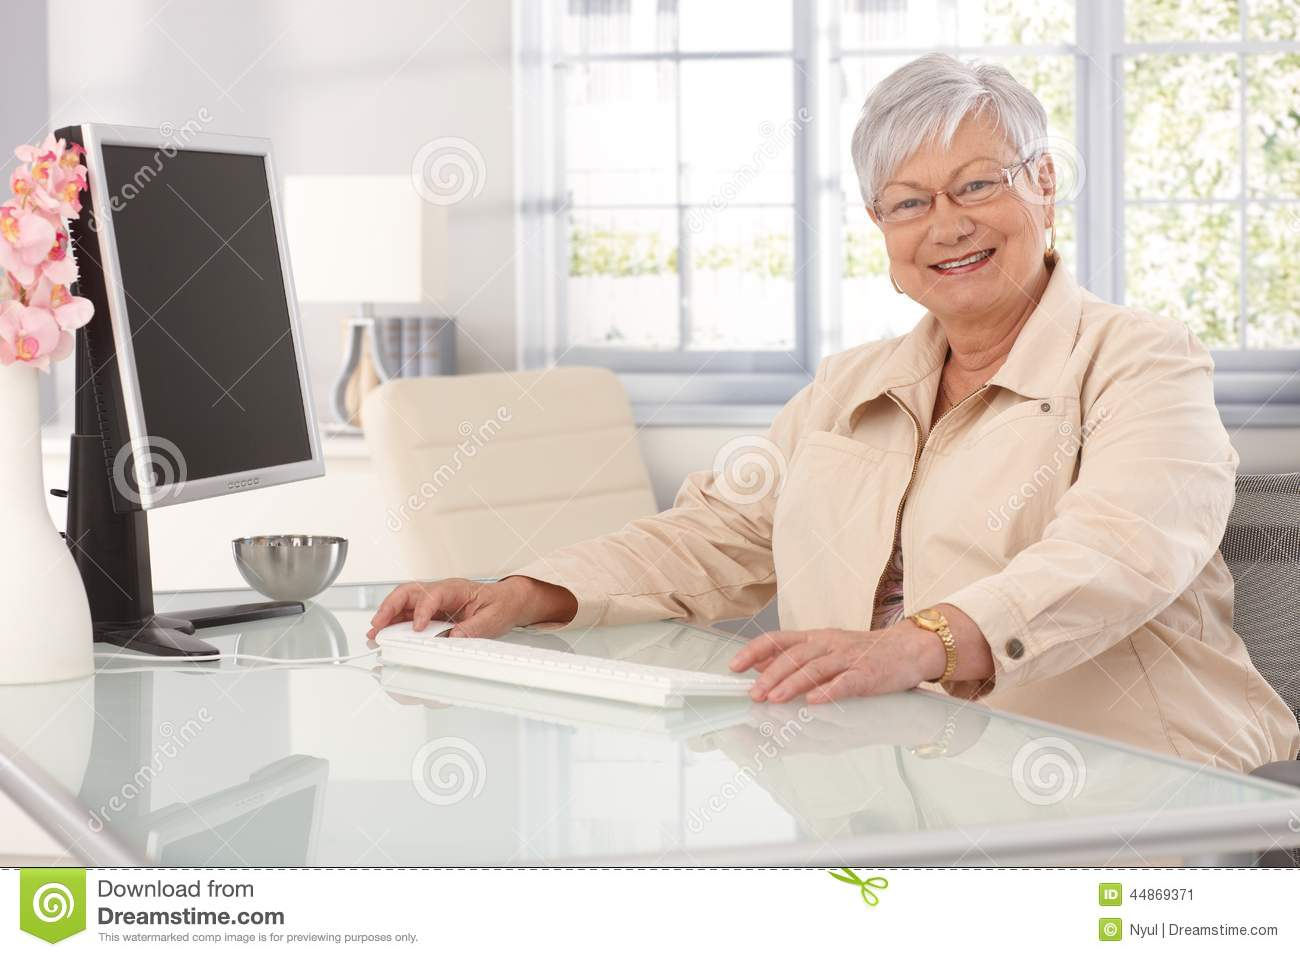 Woman on old computer